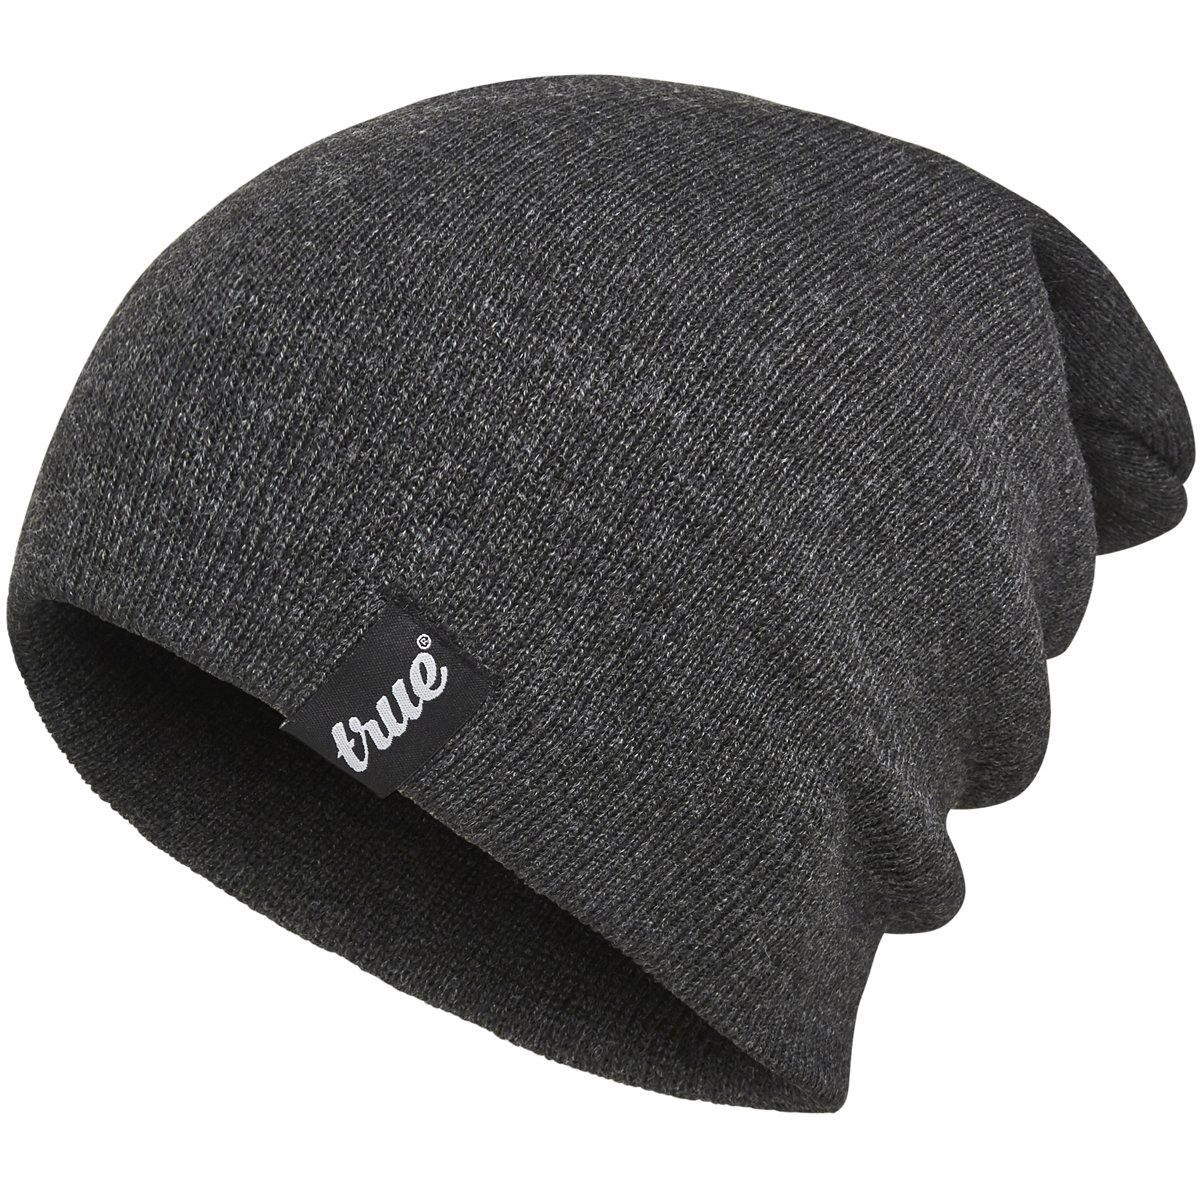 TRUE VISION Mens Charcoal Grey Beanie Hat - Wear as Slouch or Turn Cuff for Traditional Beanie Style - Soft & Comfortable One Size Fit - Winter Warm Knitted Acrylic - Unisex - Suitable for Men & Women